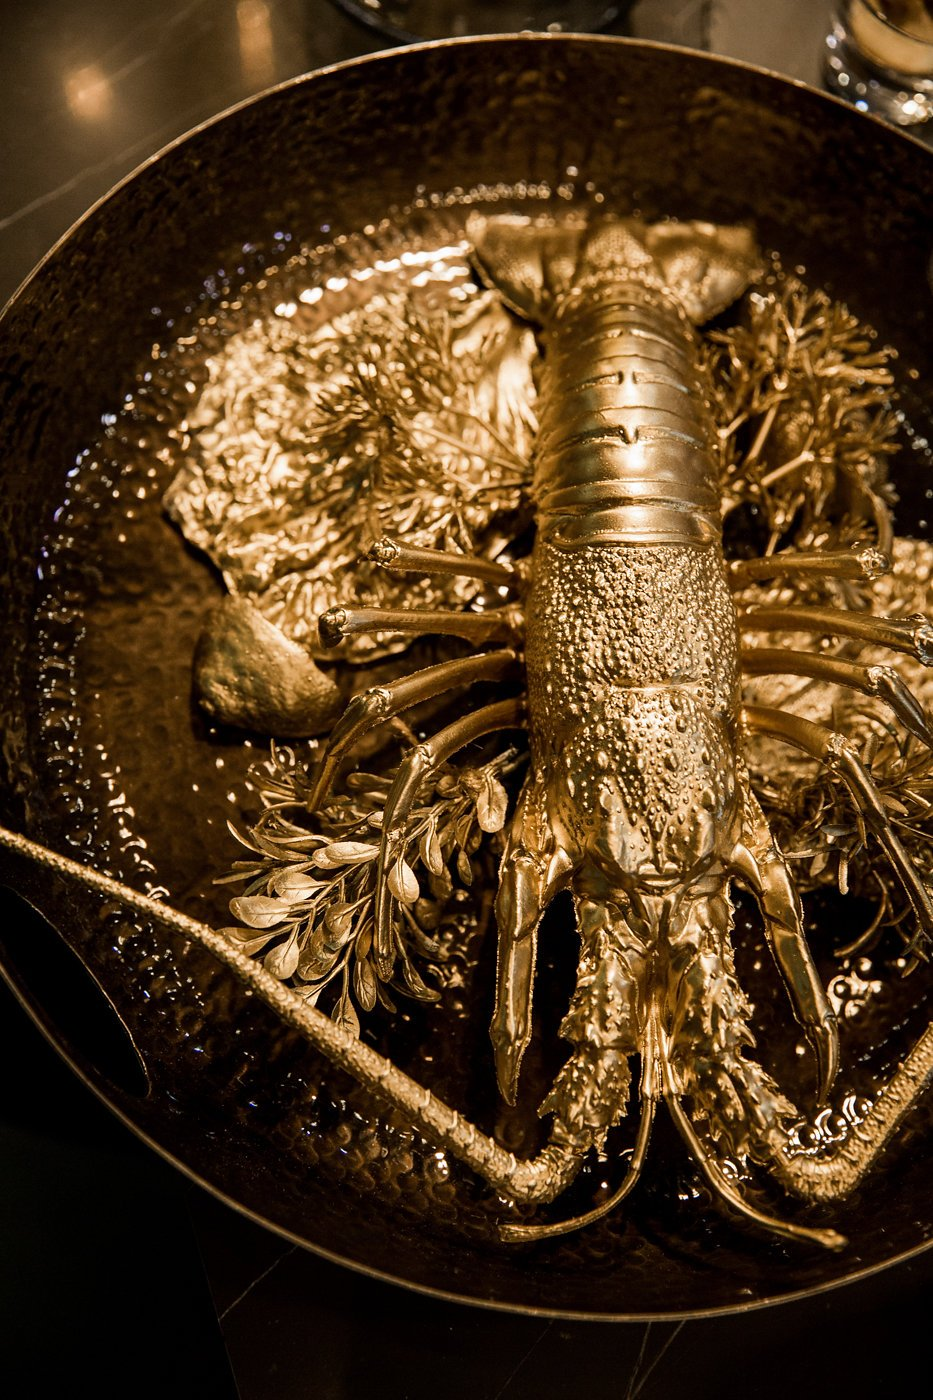 Golden painted lobster in a black cooking pan